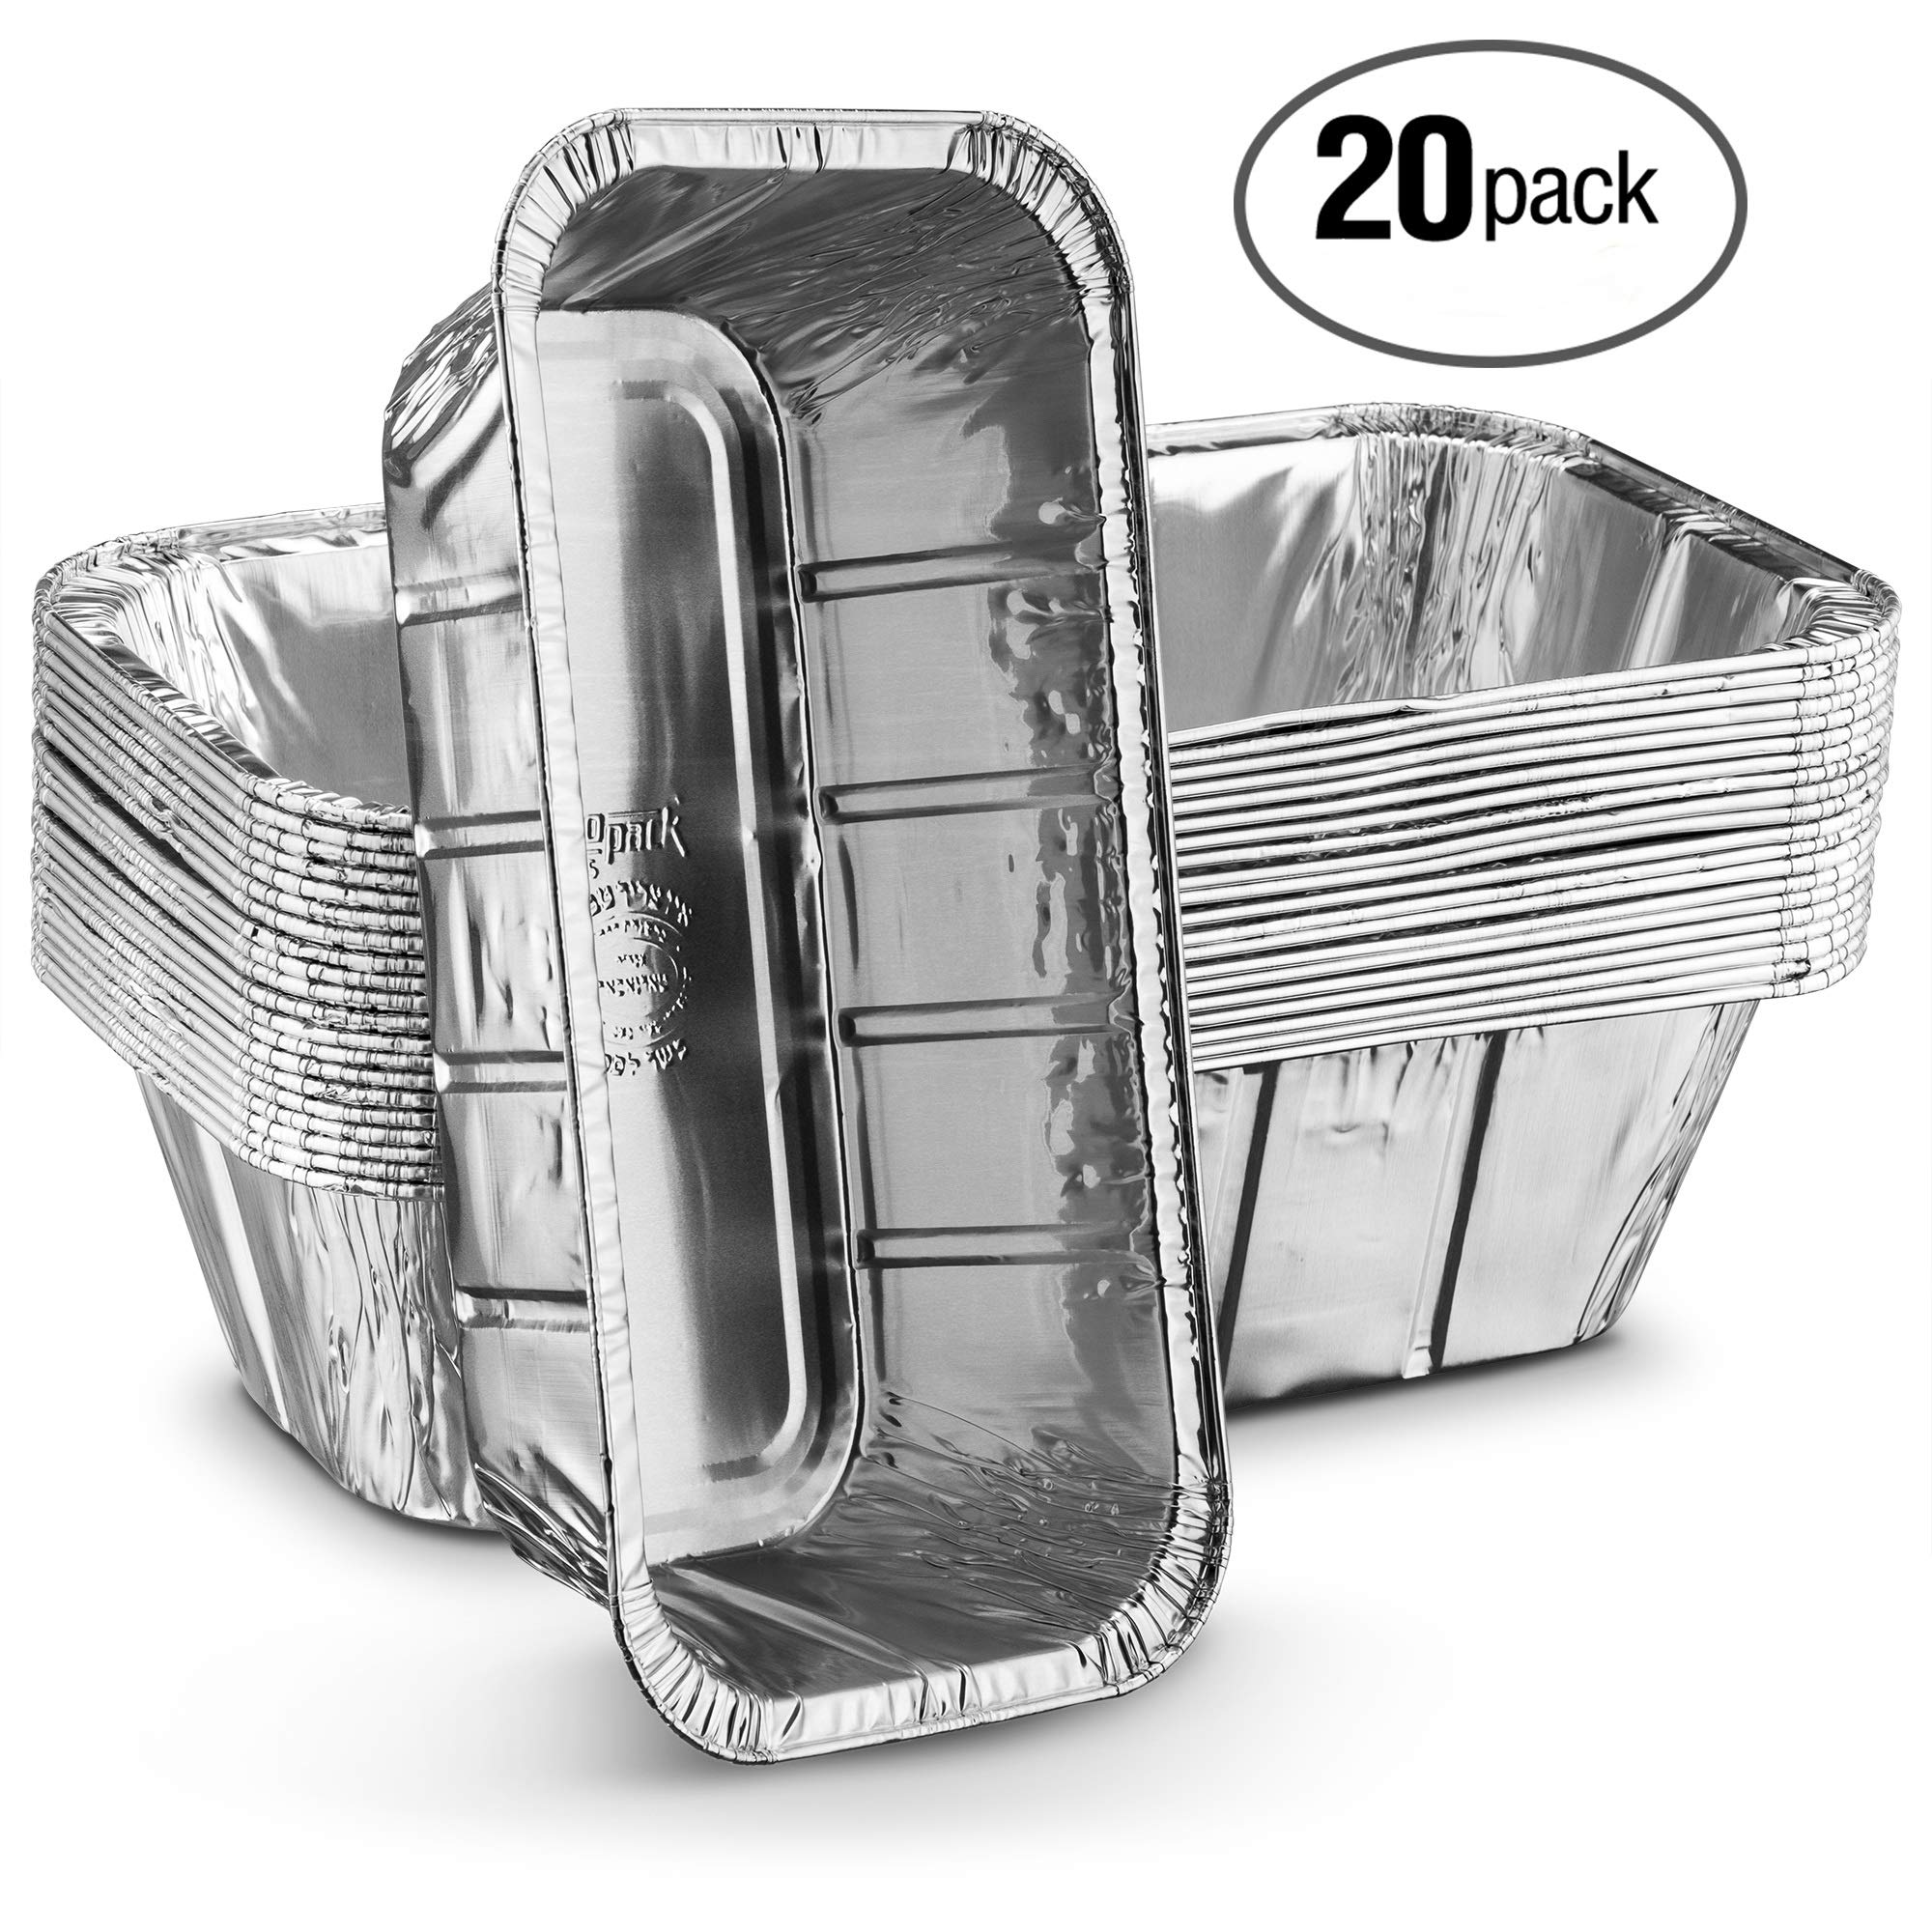 Propack Aluminum Disposable Rectangle 5 Pound Loaf Pans For Serving, Baking, Cooking, Roasting, Broiling, Cakes, Lasanga,etc, 12.5'' x 6.5'' x 3'' Pack of 20